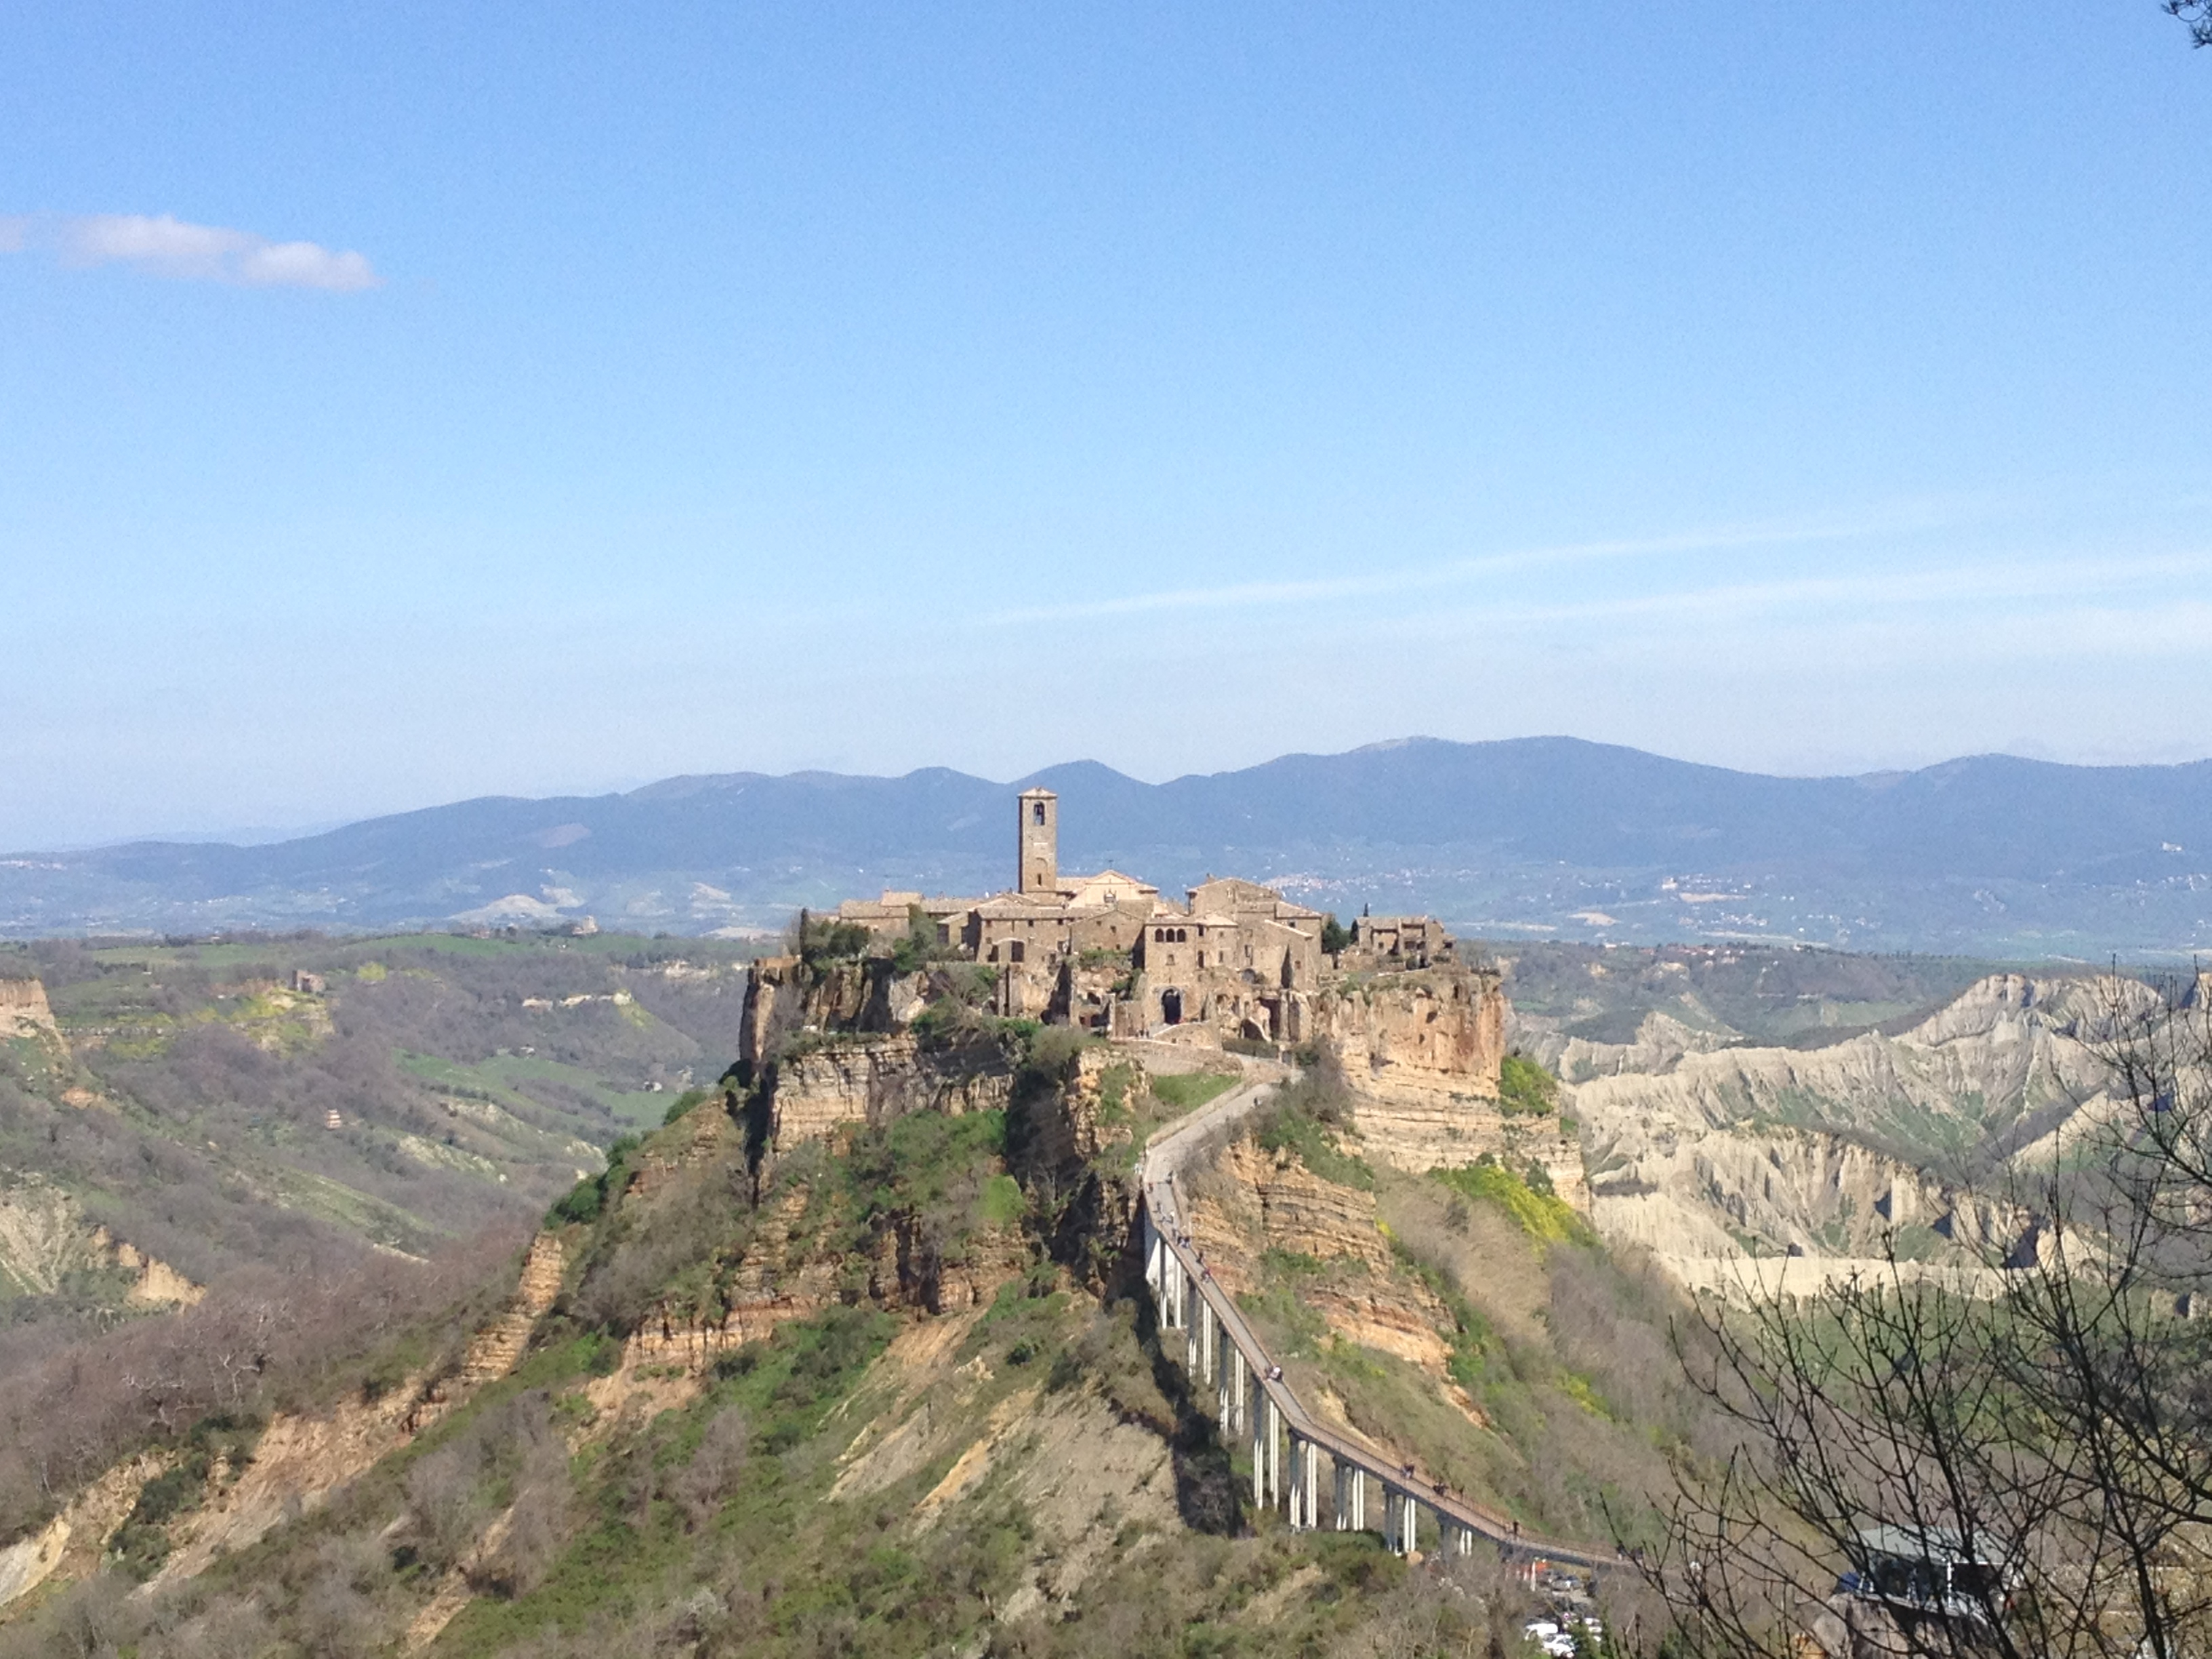 Day trip to the stunning town of Civita di Bagnoregio